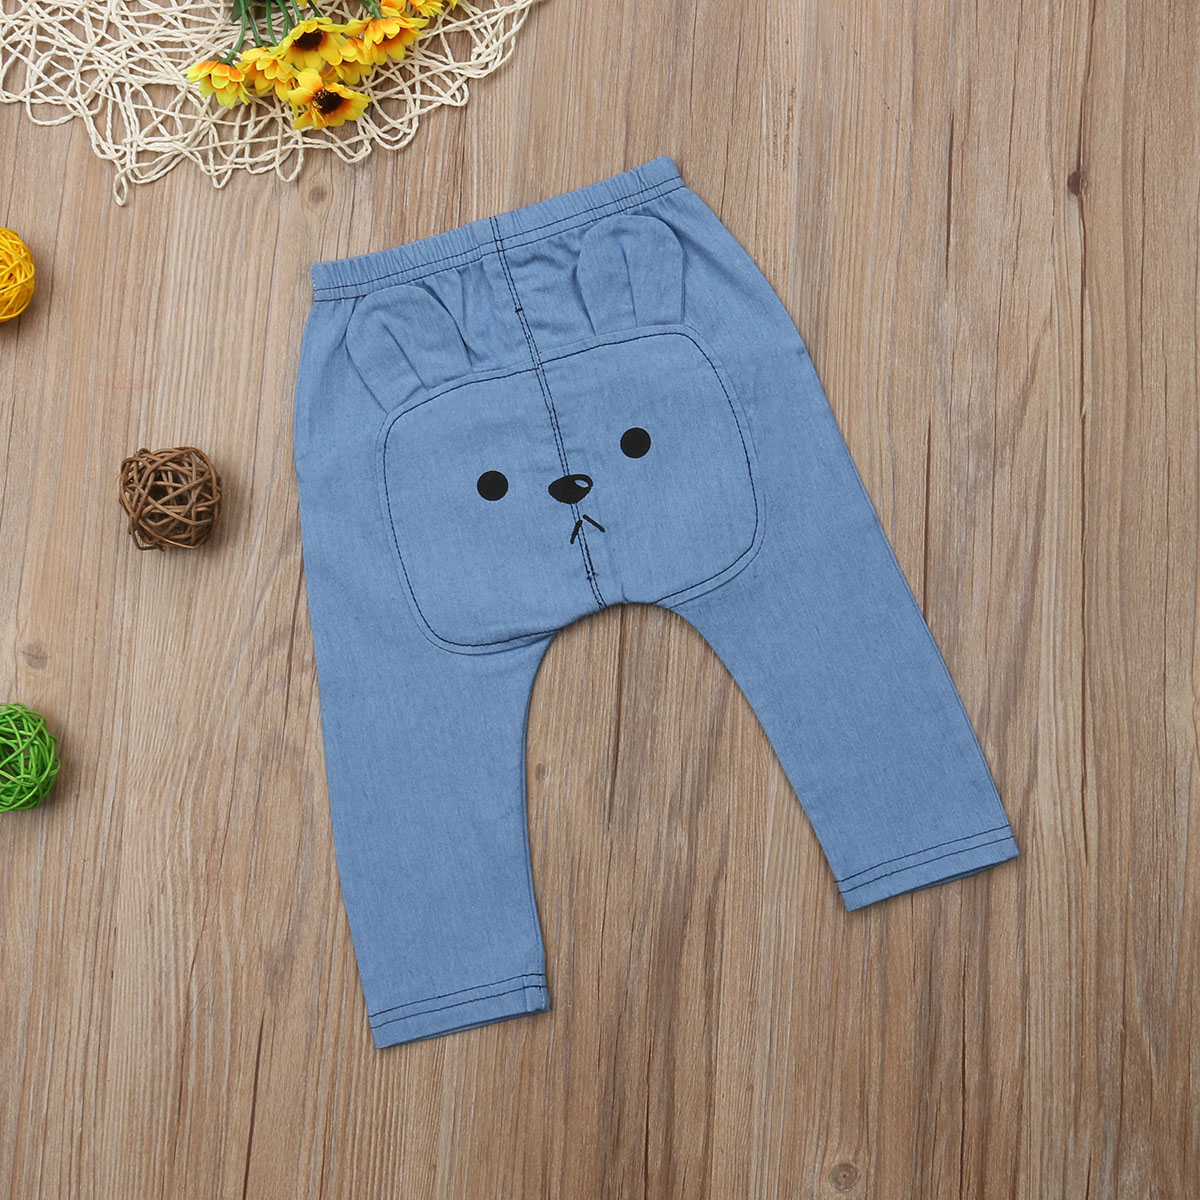 Infant Baby Boys&Girls Clothes Cartoon Bears Denim Clothing Long Pants Bottoms Kids Trousers 0-3 Years 5